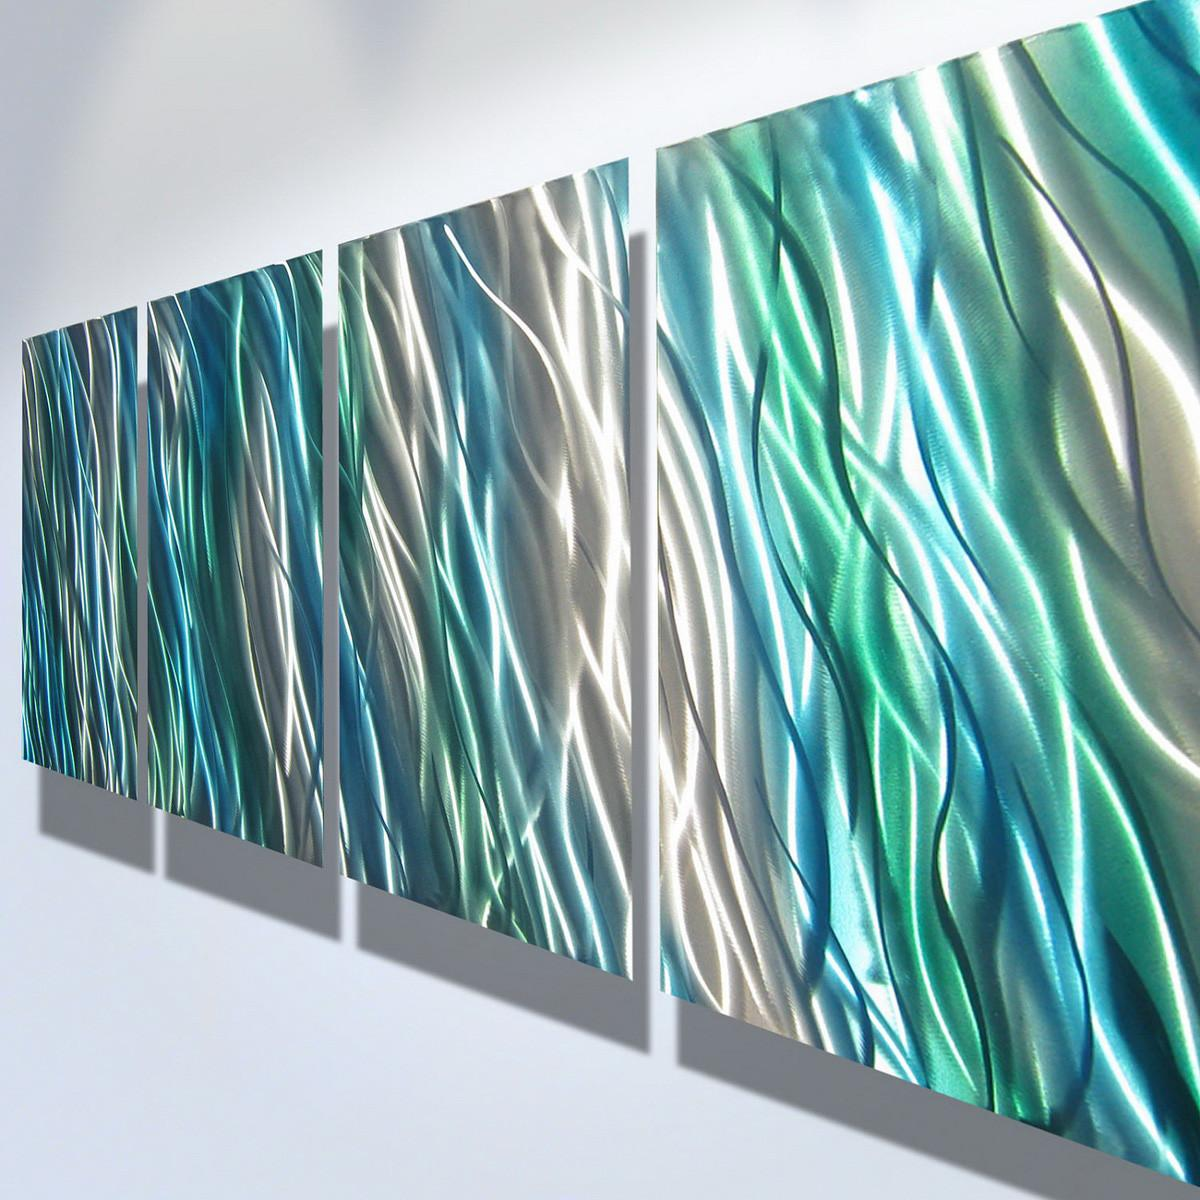 Special Design Abstract Metal Arts Contemporary Wall Art